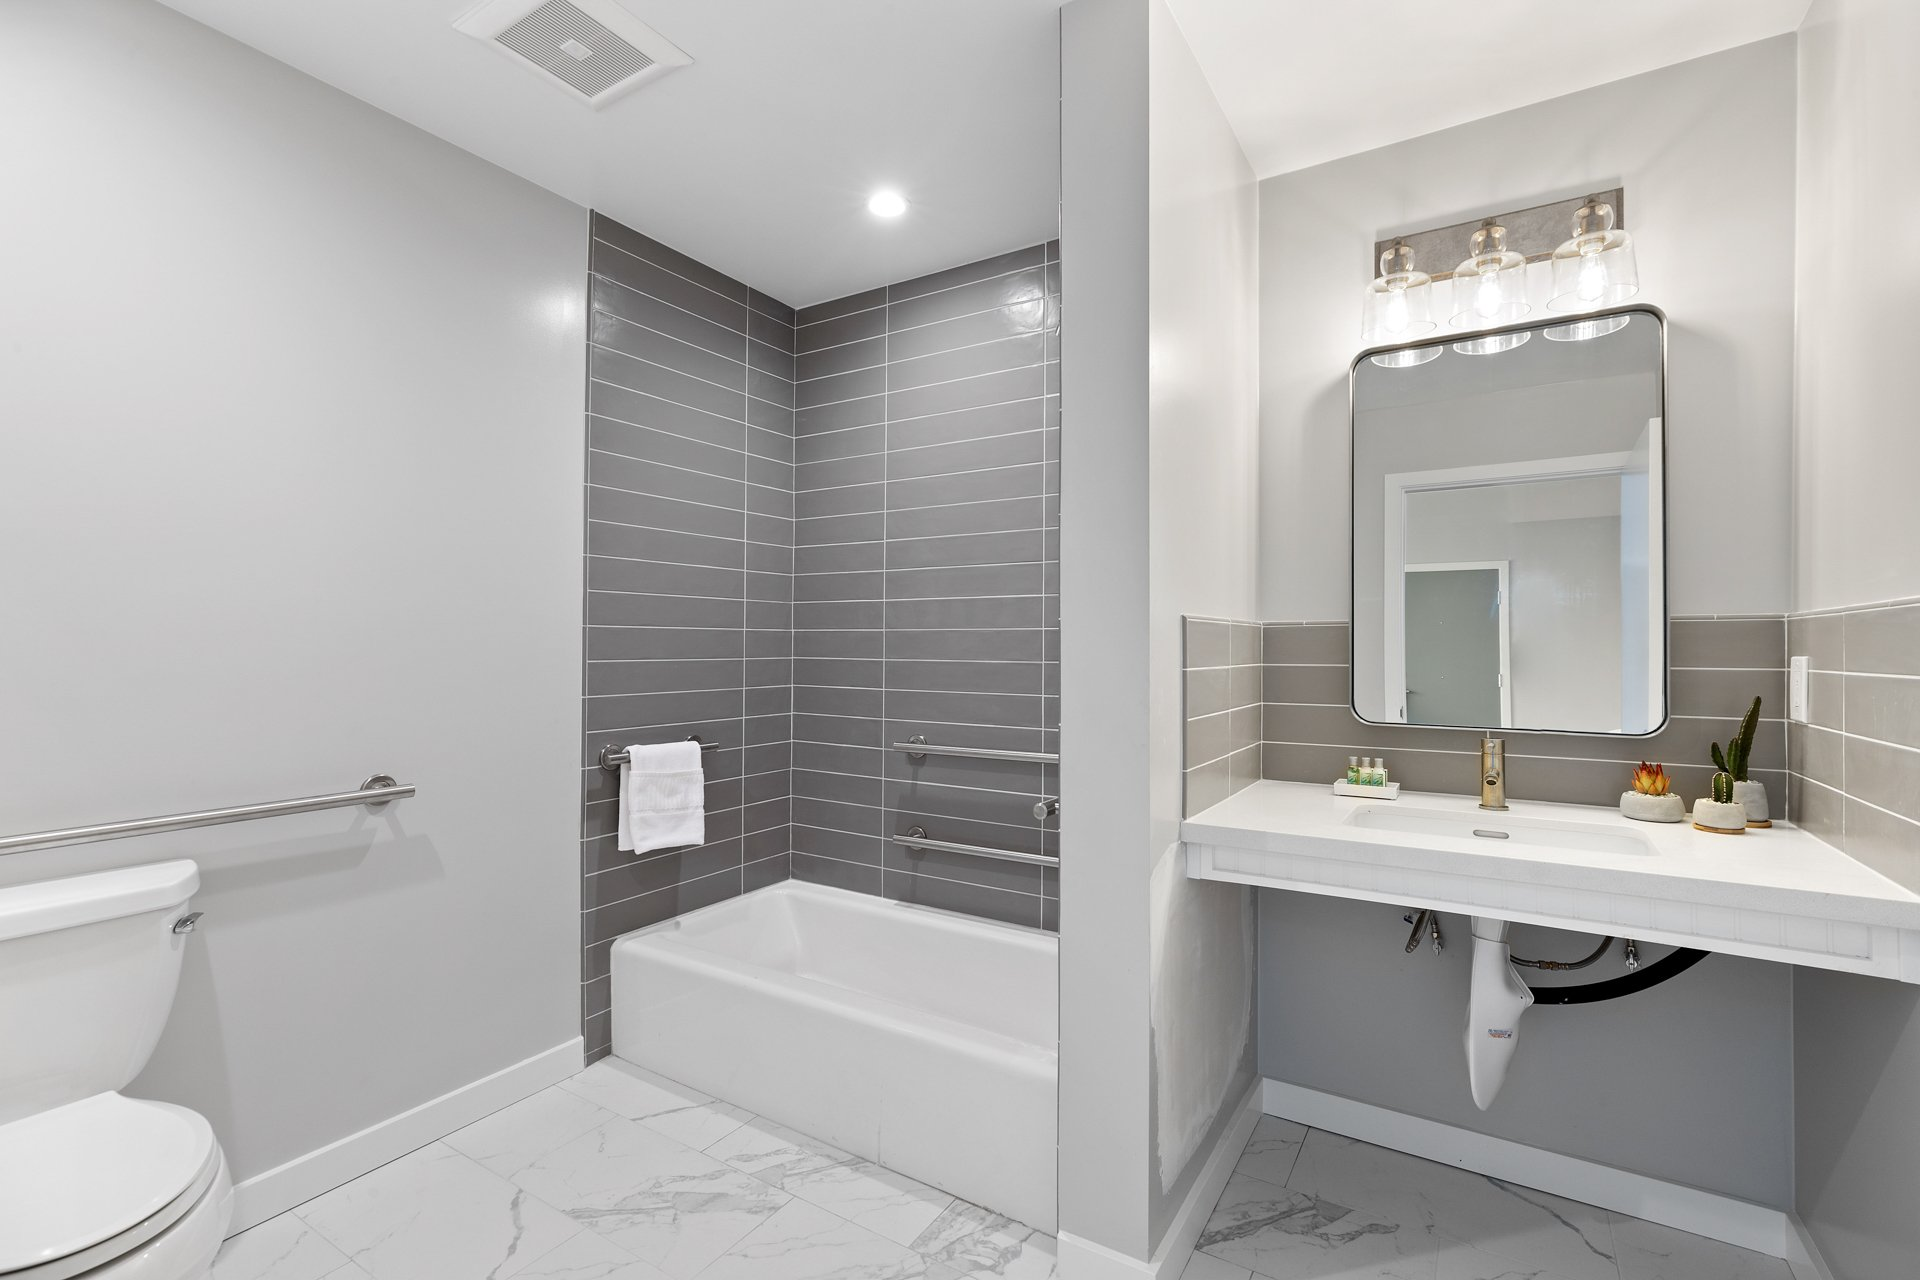 Queen Room Mobility/Hearing Accessible with Bathtub | 460 sq ft